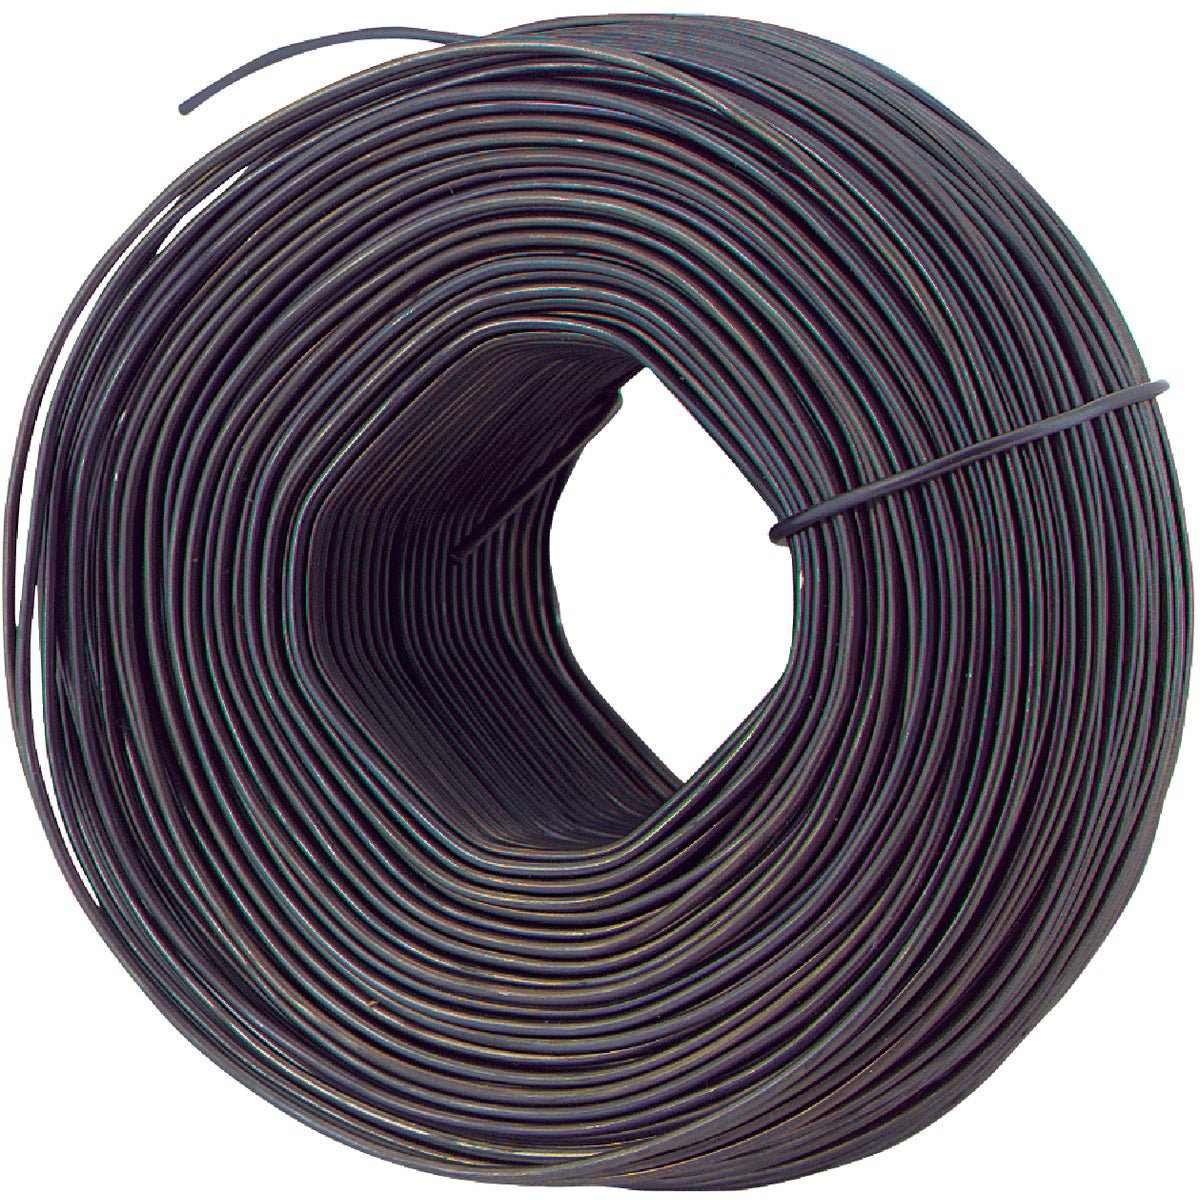 3.5LB 16.5GA TIE WIRE - TW1612312 by Primesource